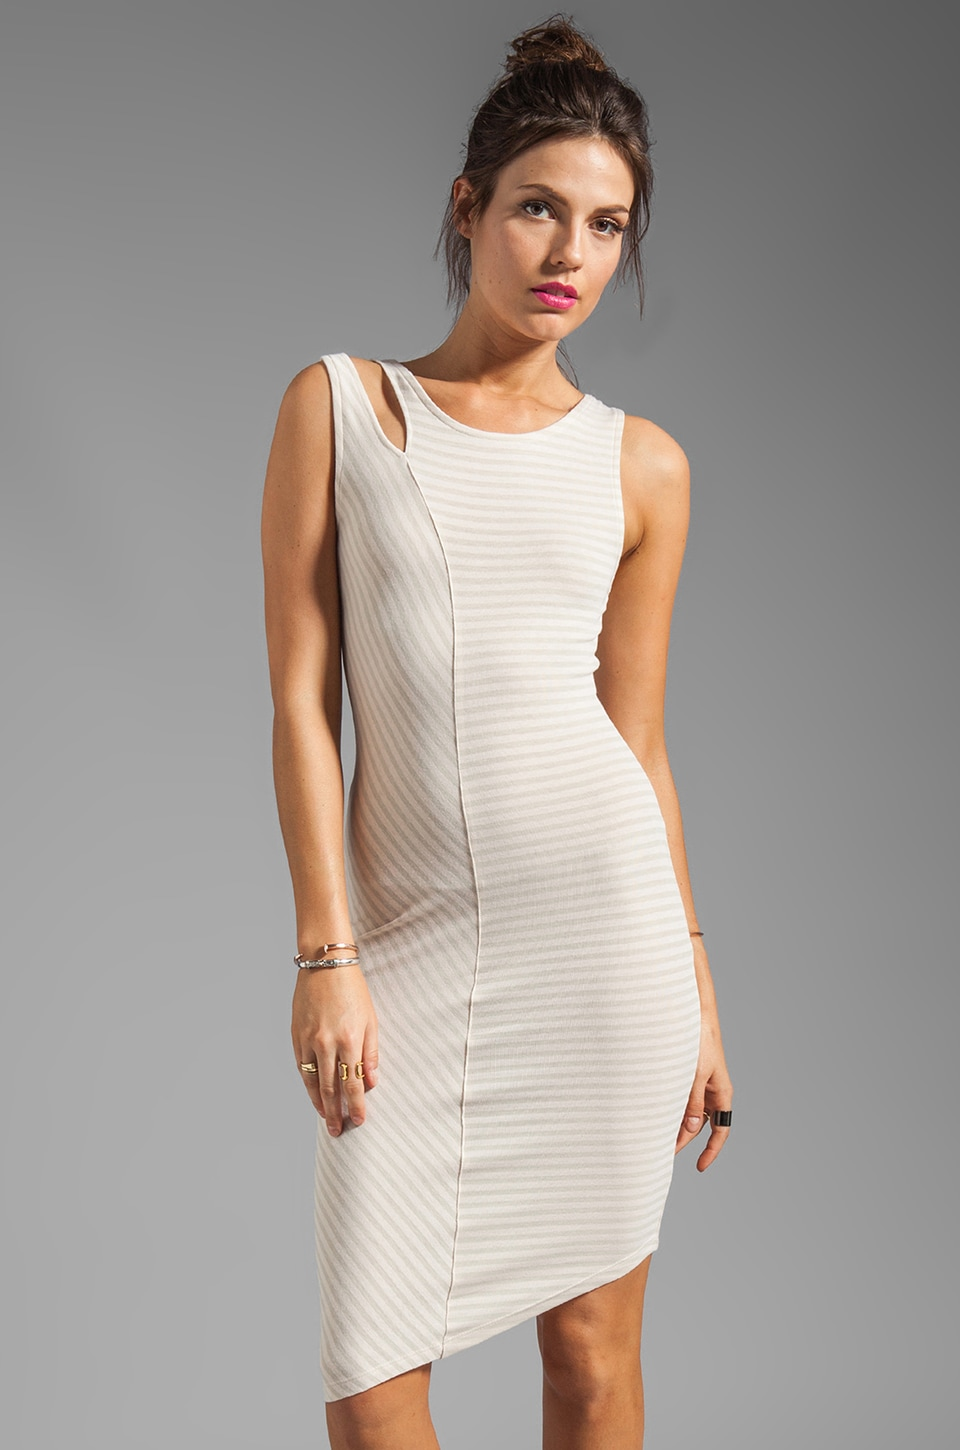 Kain Cabana Dress in Fog/White Stripe